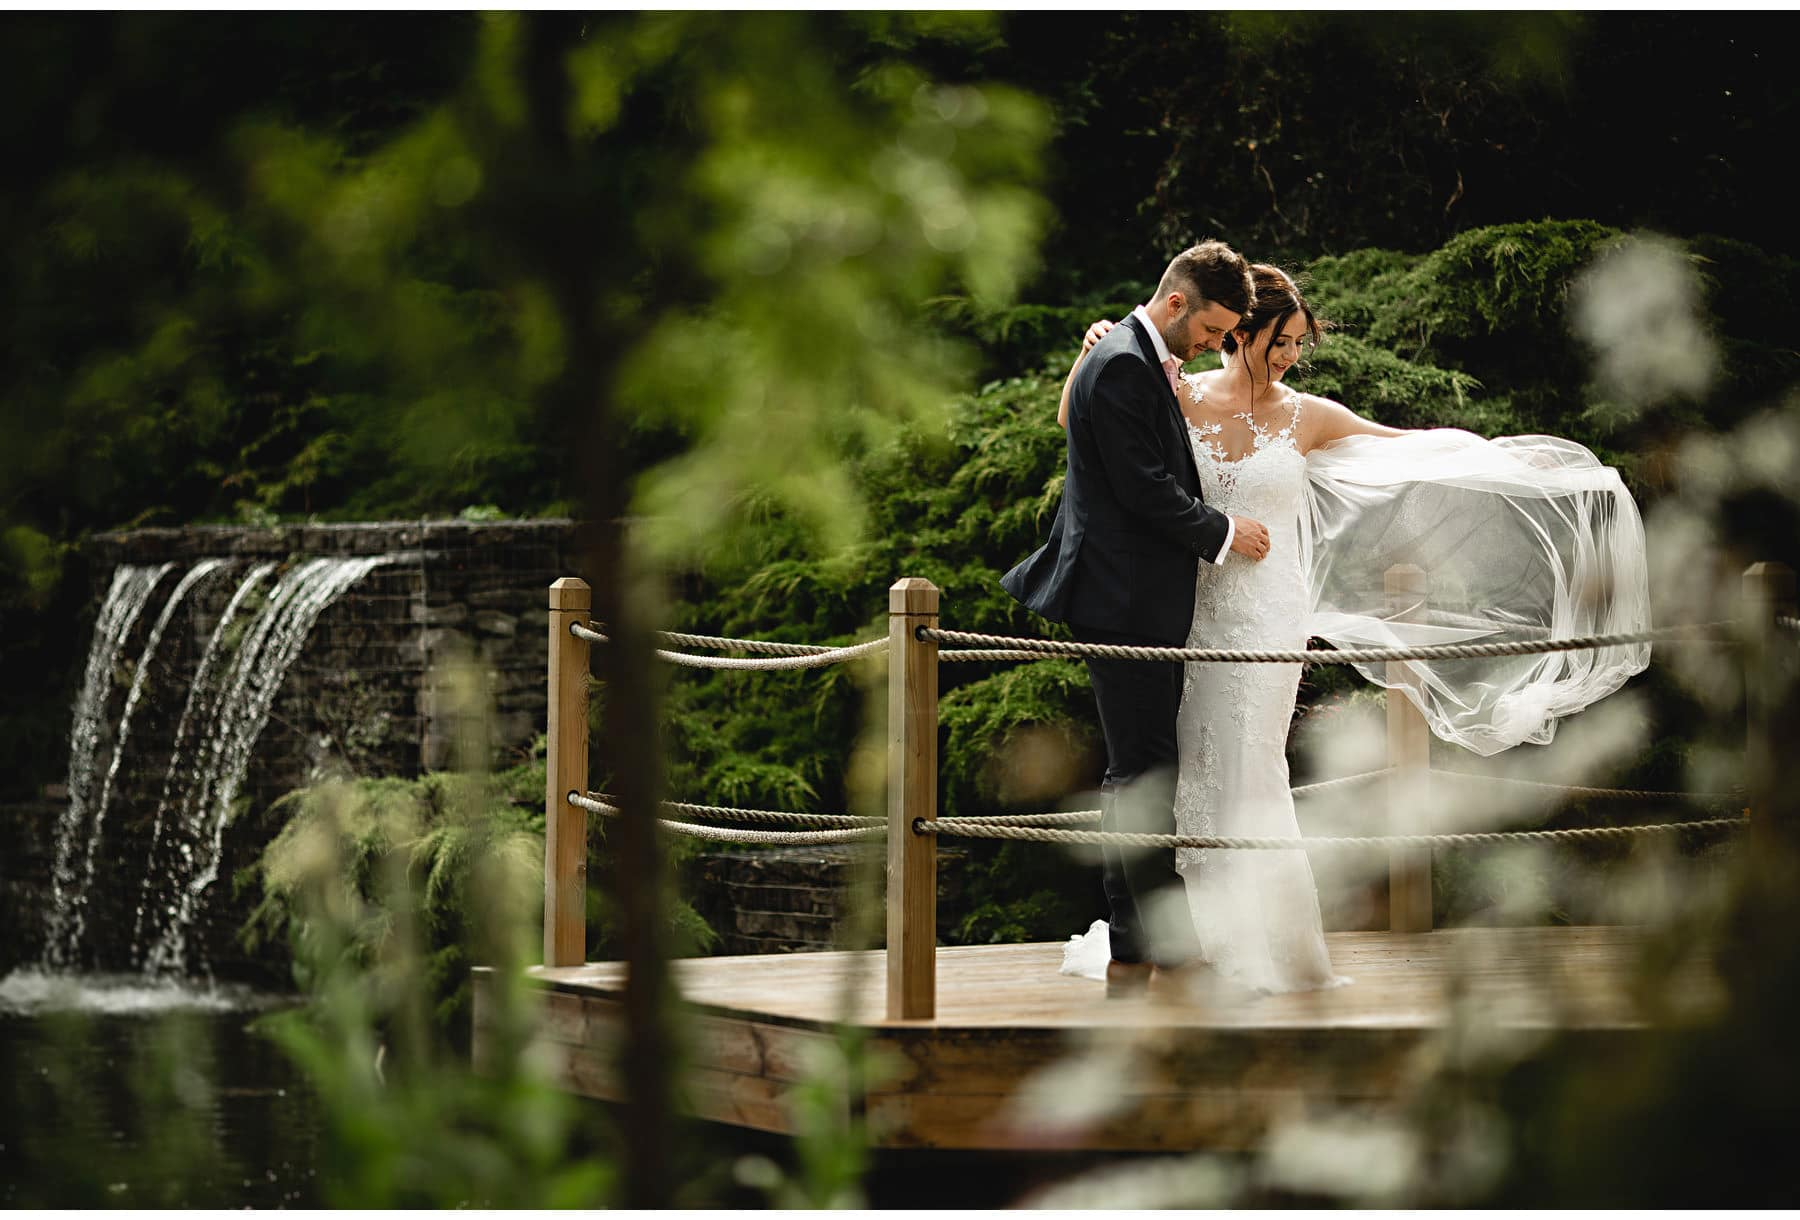 the bride & groom in the gardens at Redhouse Barns